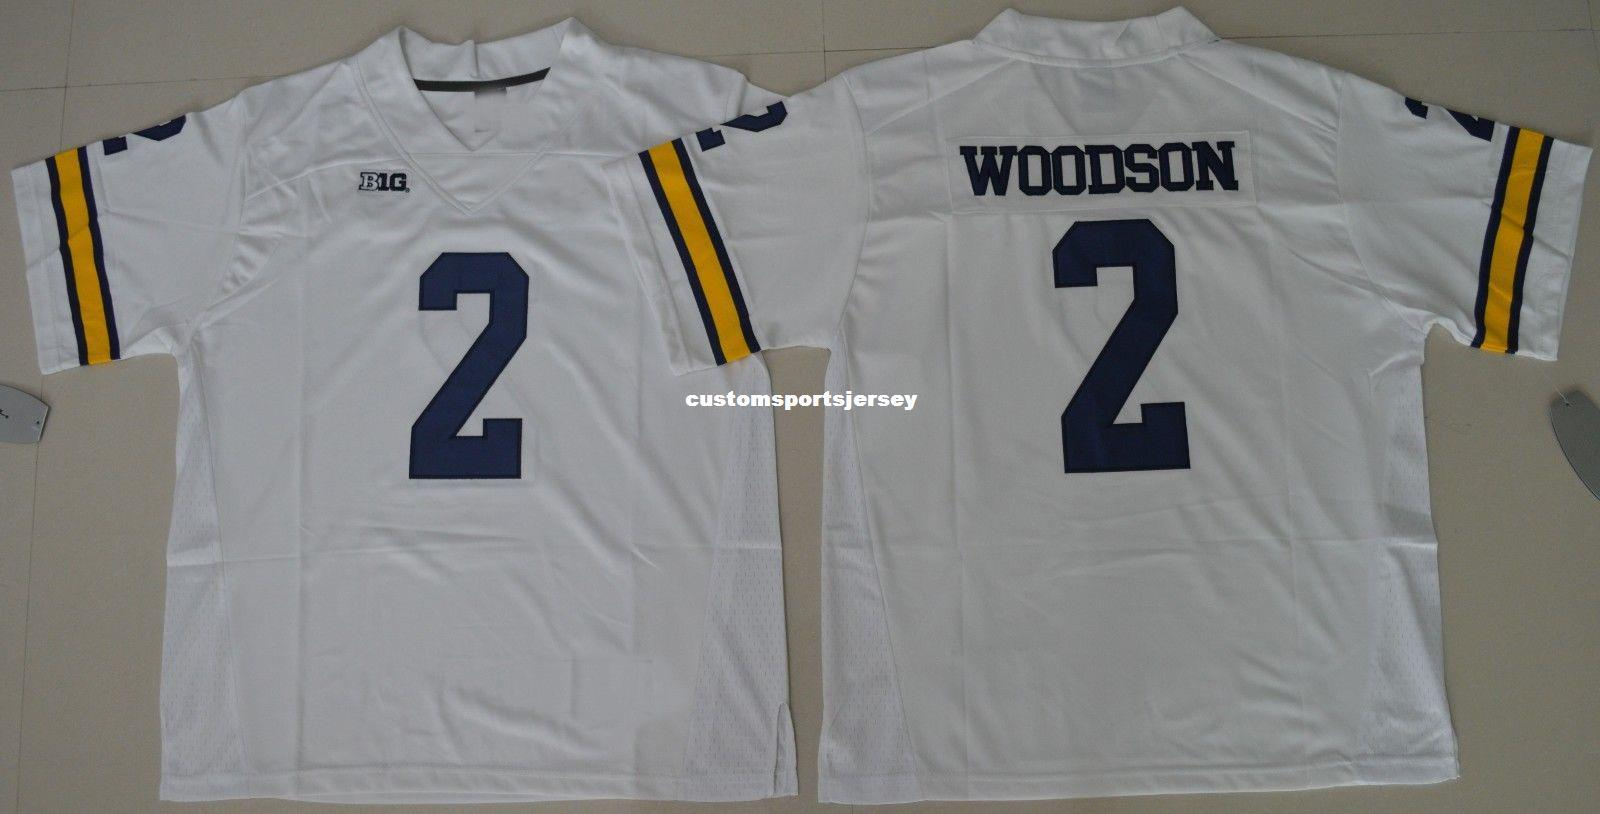 83b534b0878 2019 Cheap Custom Michigan Wolverines Charles Woodson  2 College Football  Jersey White Stitched Customize Any Number Name MEN WOMEN YOUTH XS 5XL From  ...